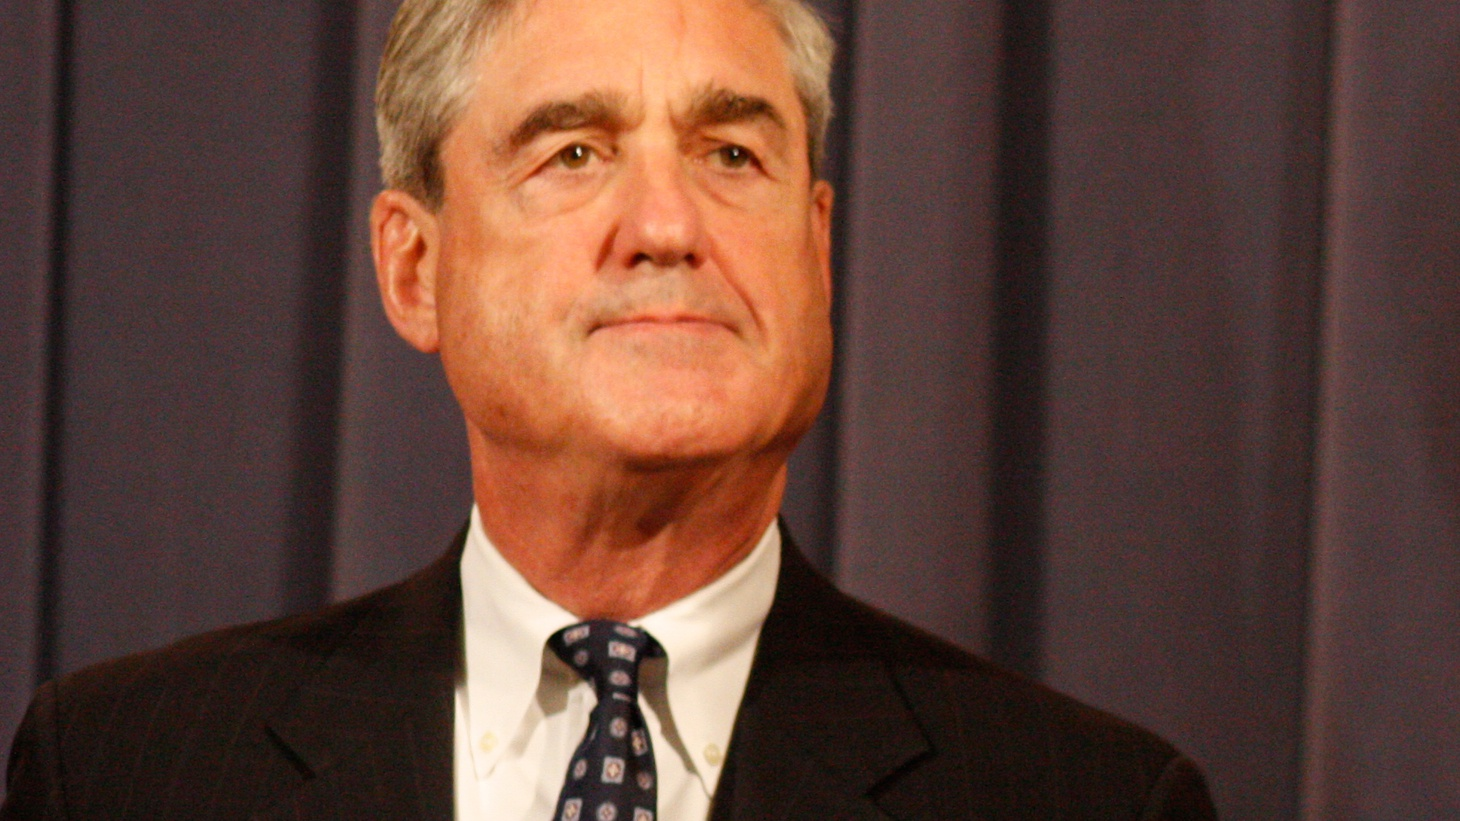 Where are the subpoenas? Charges? Sentencing? Is the Mueller investigation at a crawl?